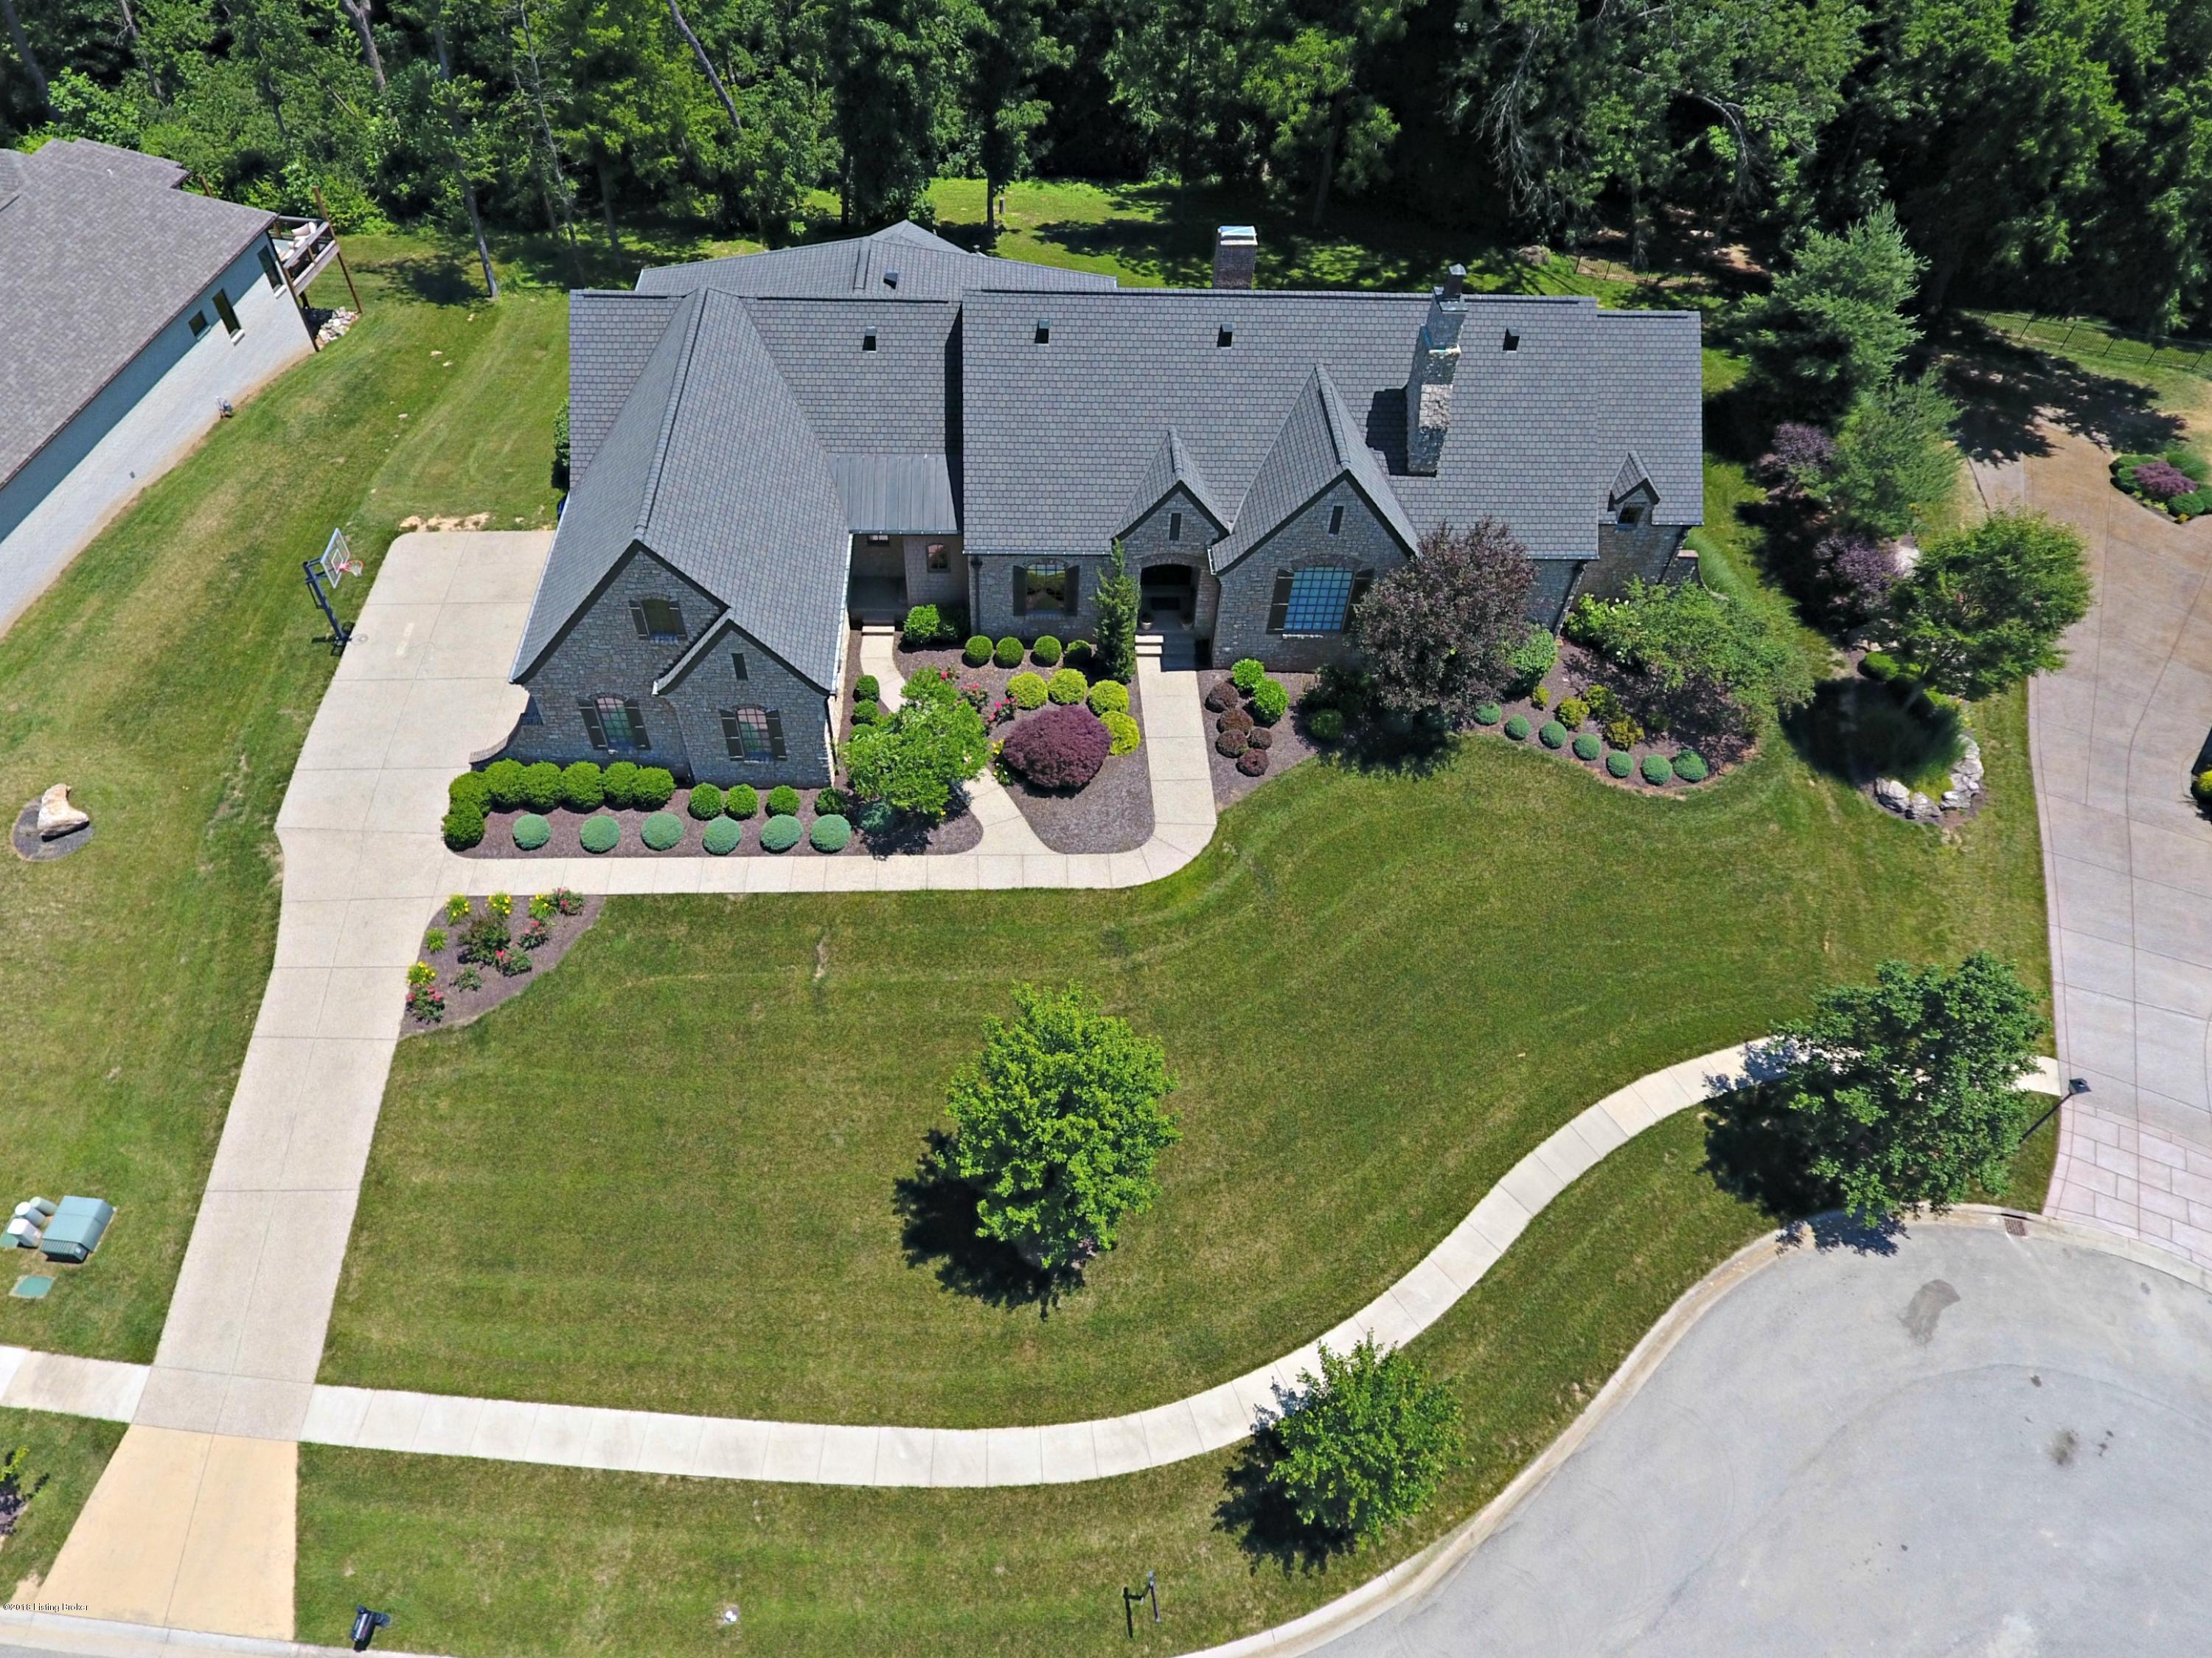 12509 Poplar Woods Dr, Goshen, Kentucky 40026, 5 Bedrooms Bedrooms, 8 Rooms Rooms,8 BathroomsBathrooms,Residential,For Sale,Poplar Woods,1518517